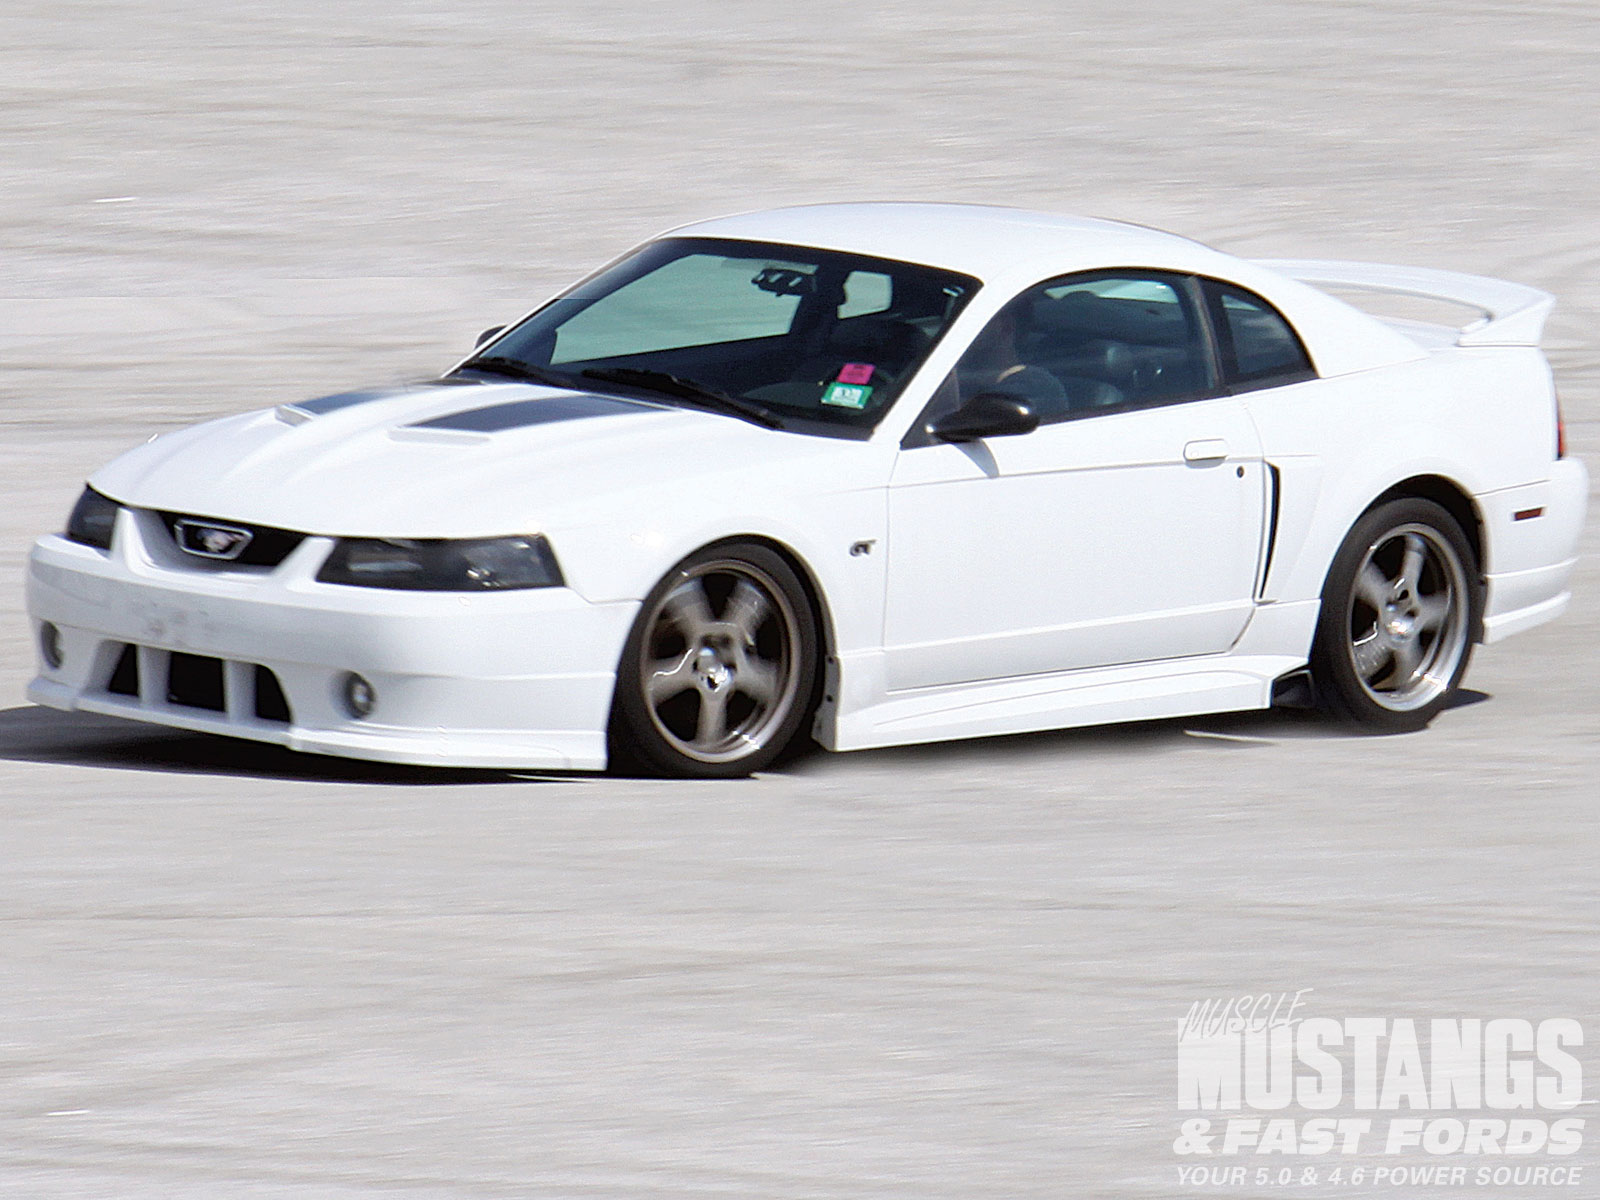 Ford Mustang 2001 #2